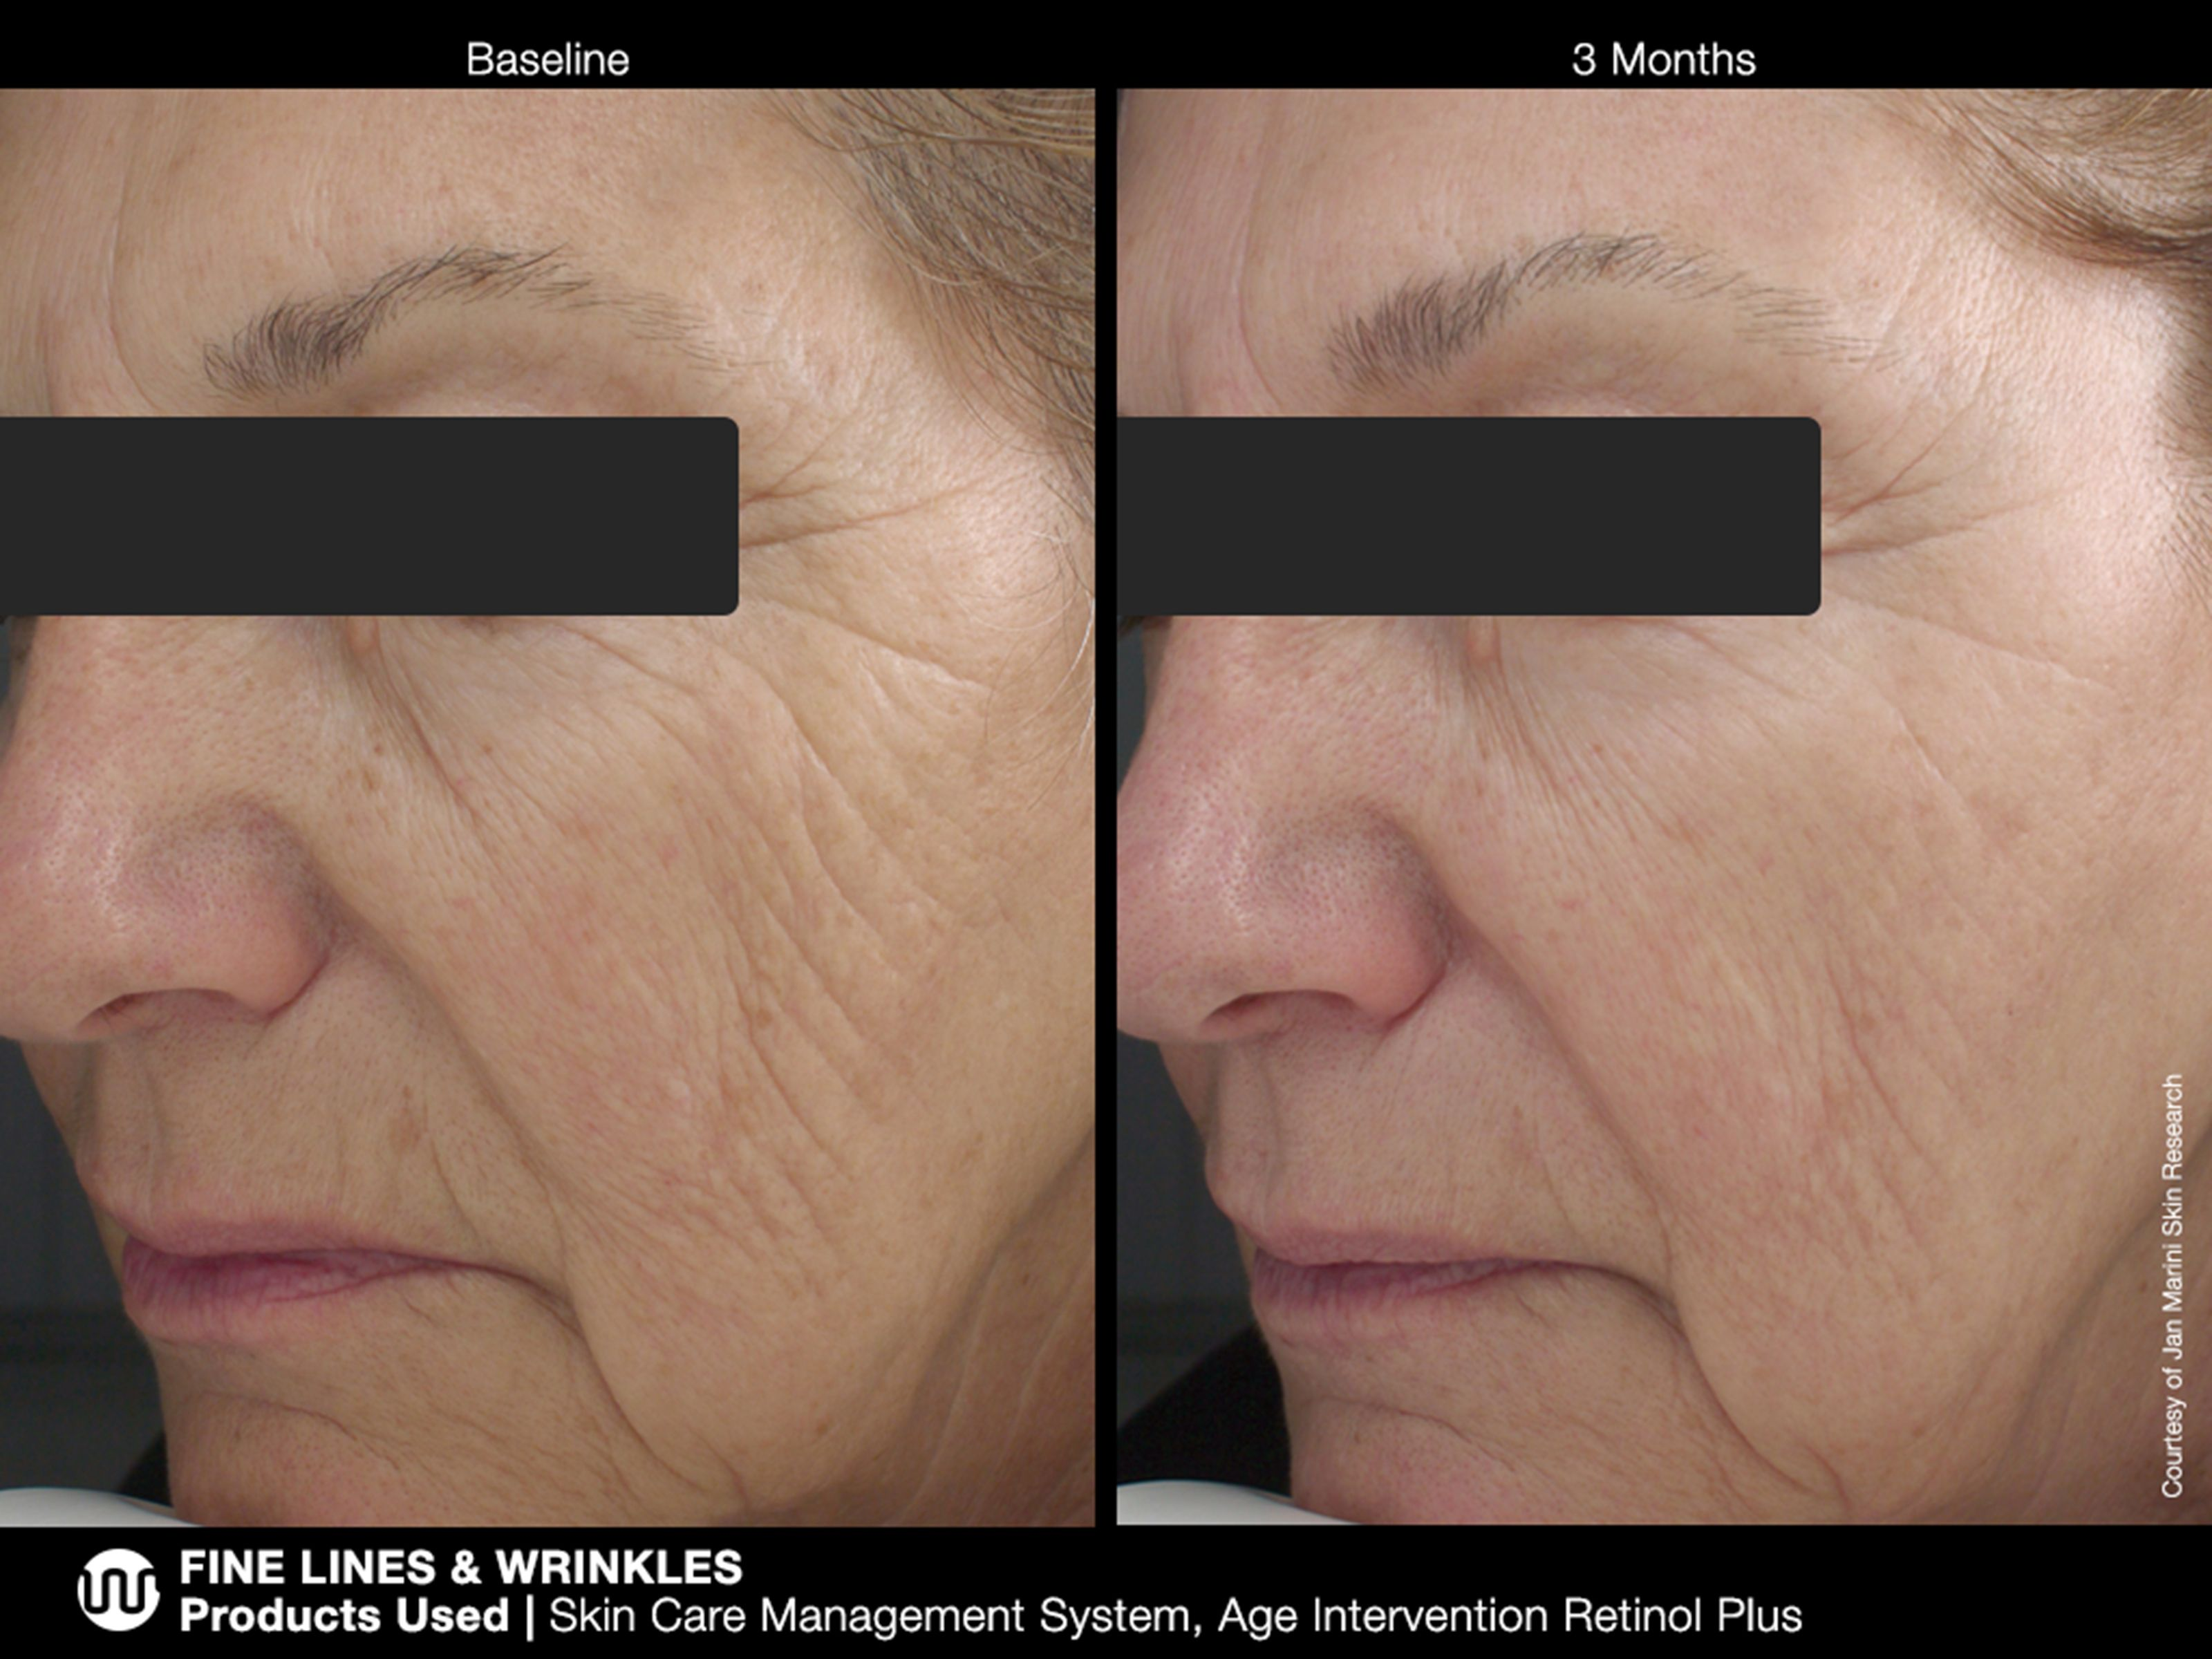 Fine Lines Wrinkles Products Used Skin Care Management System And Age Intervention Retinol Plus Http Www Janmarini Com Results Photo Asp Id 7